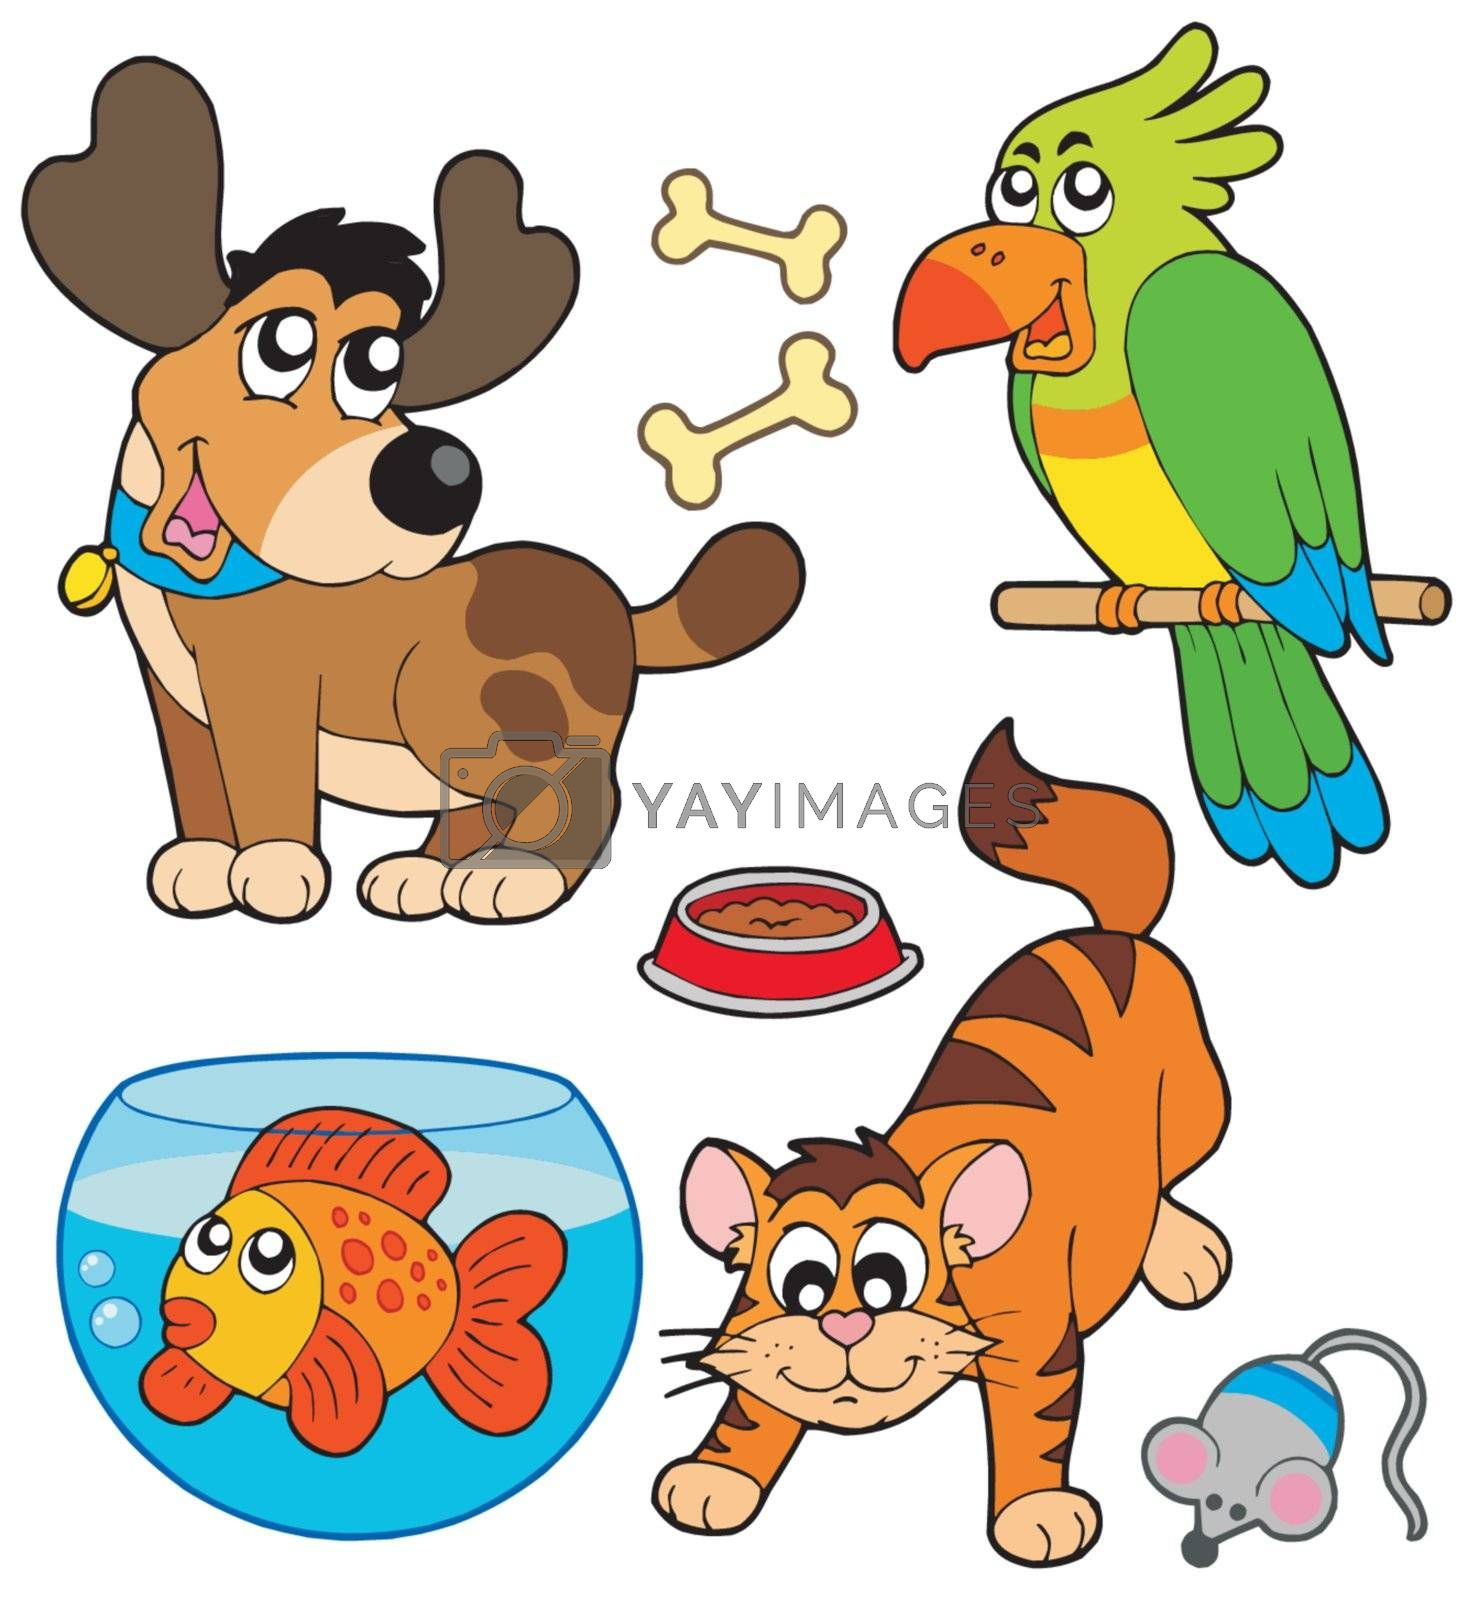 Cartoon pets collection - vector illustration.